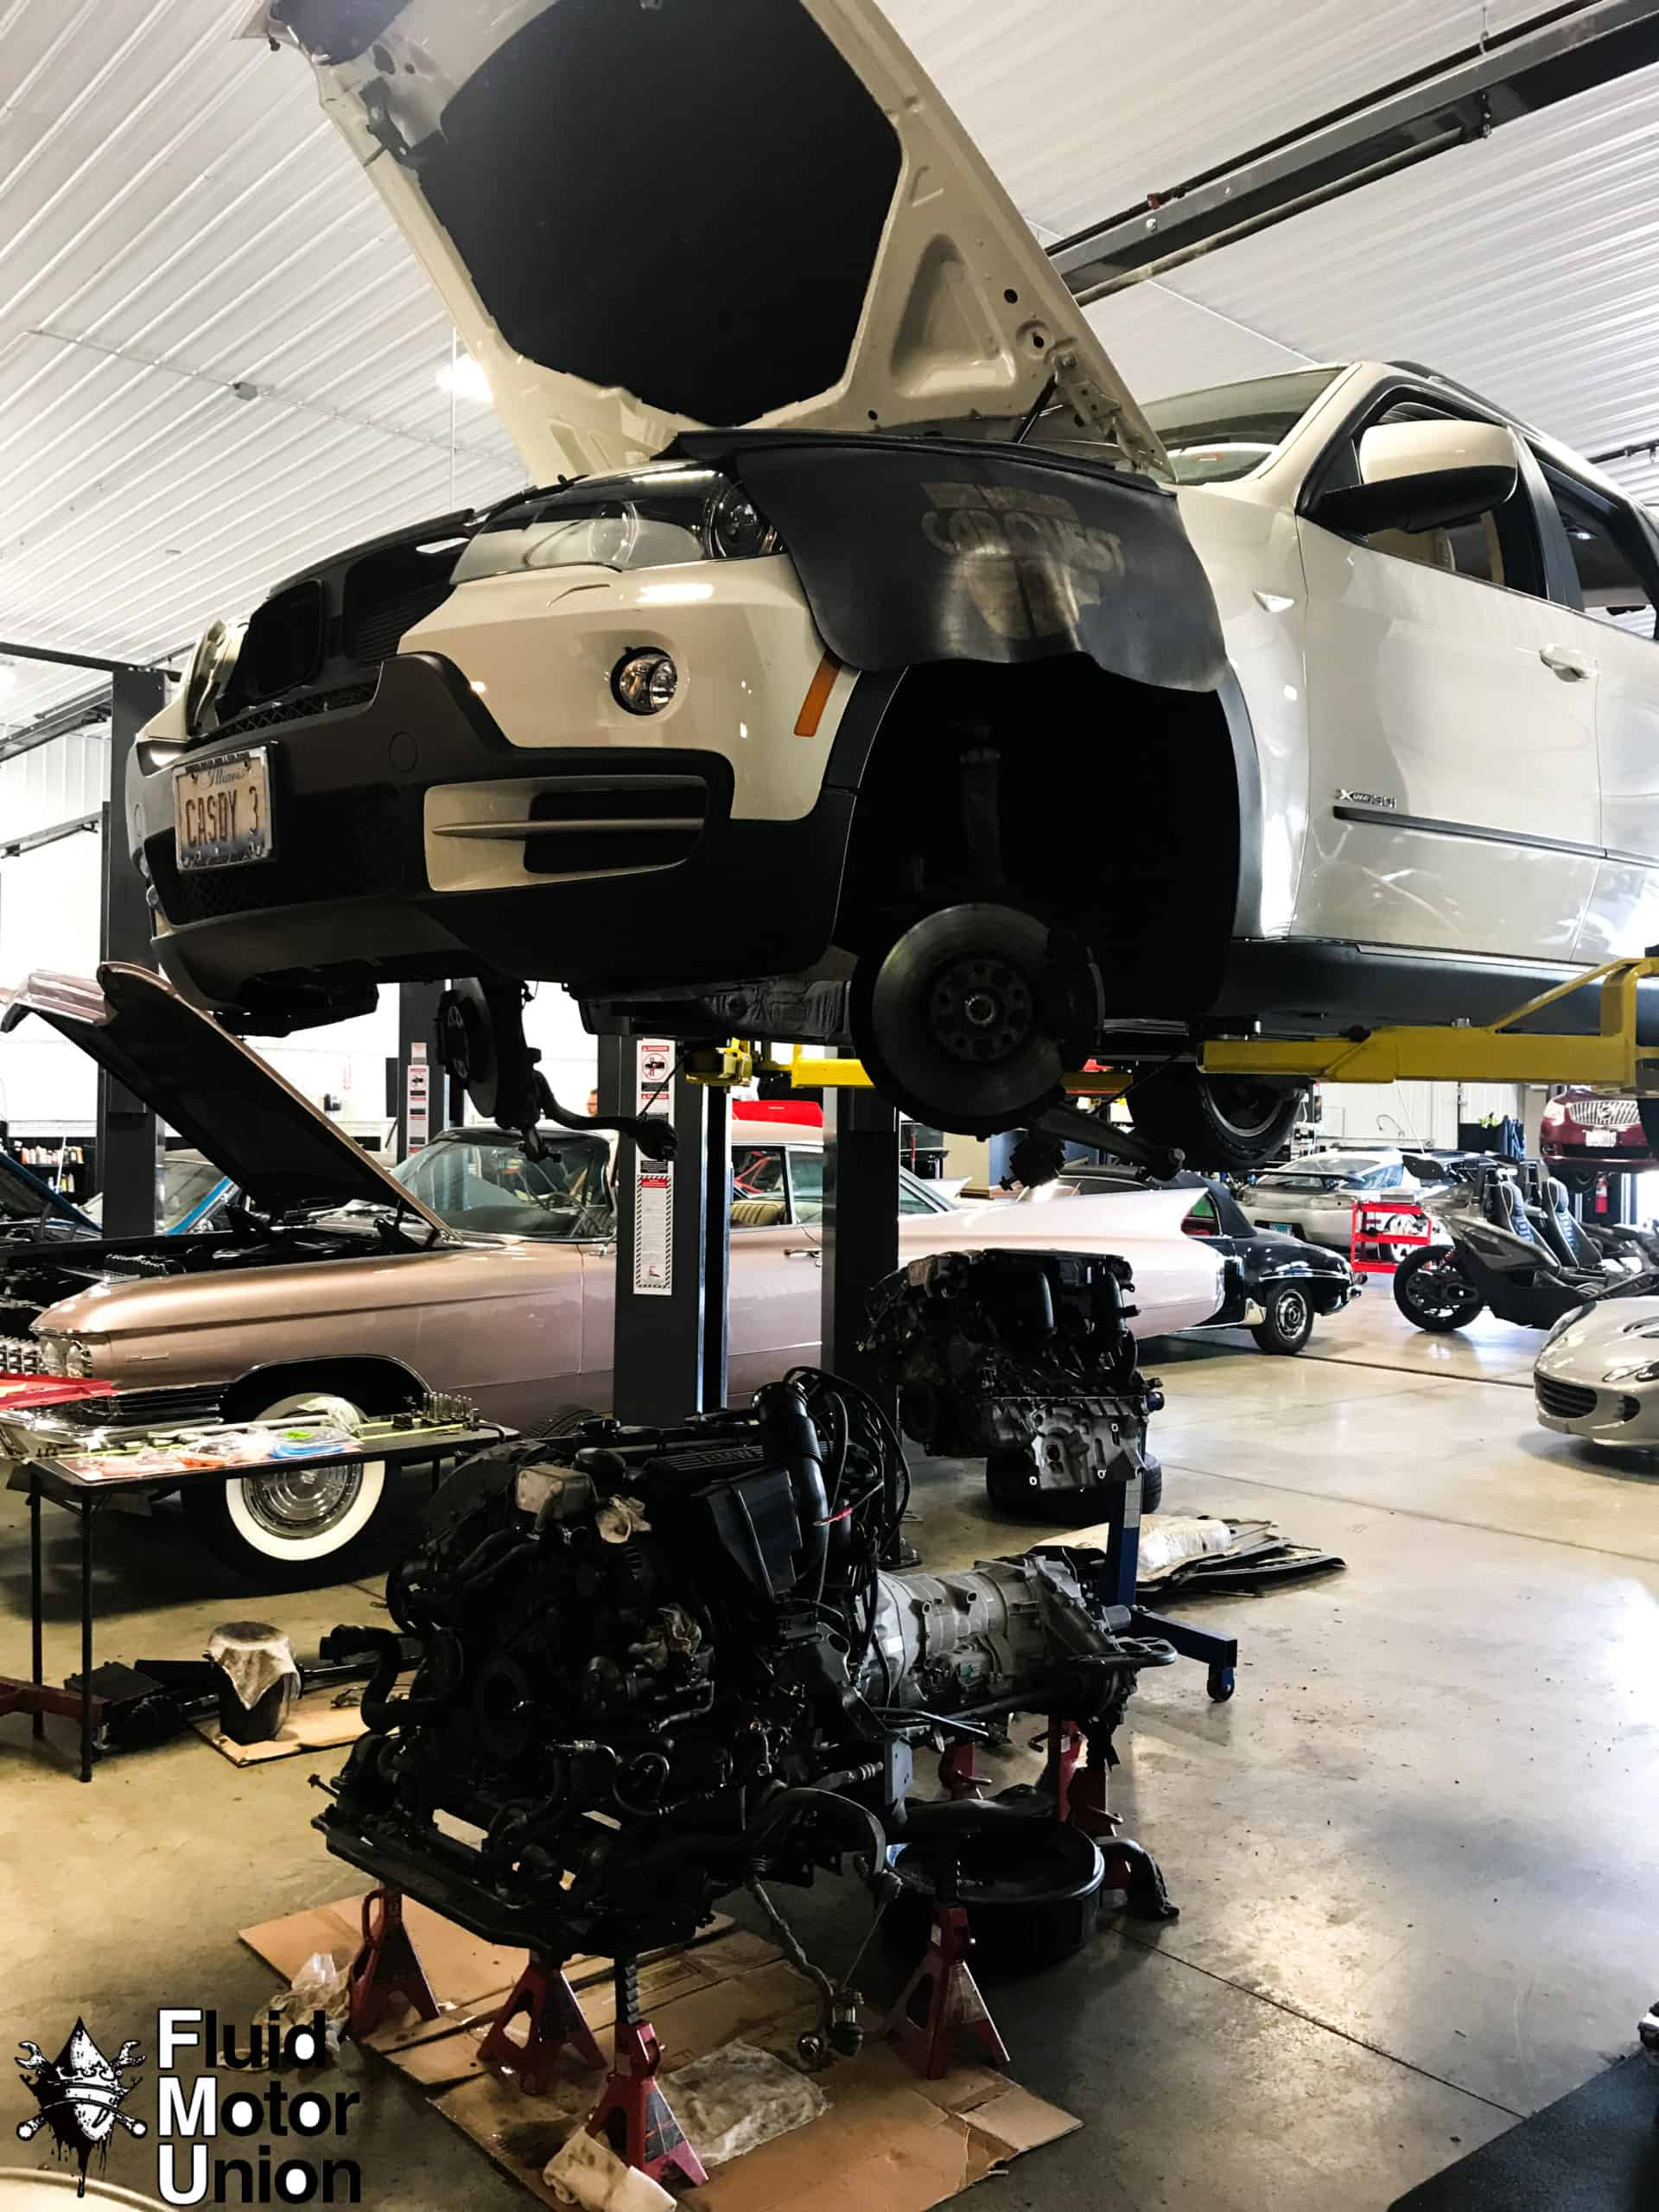 Engine Replacement on a BMW x5 removed